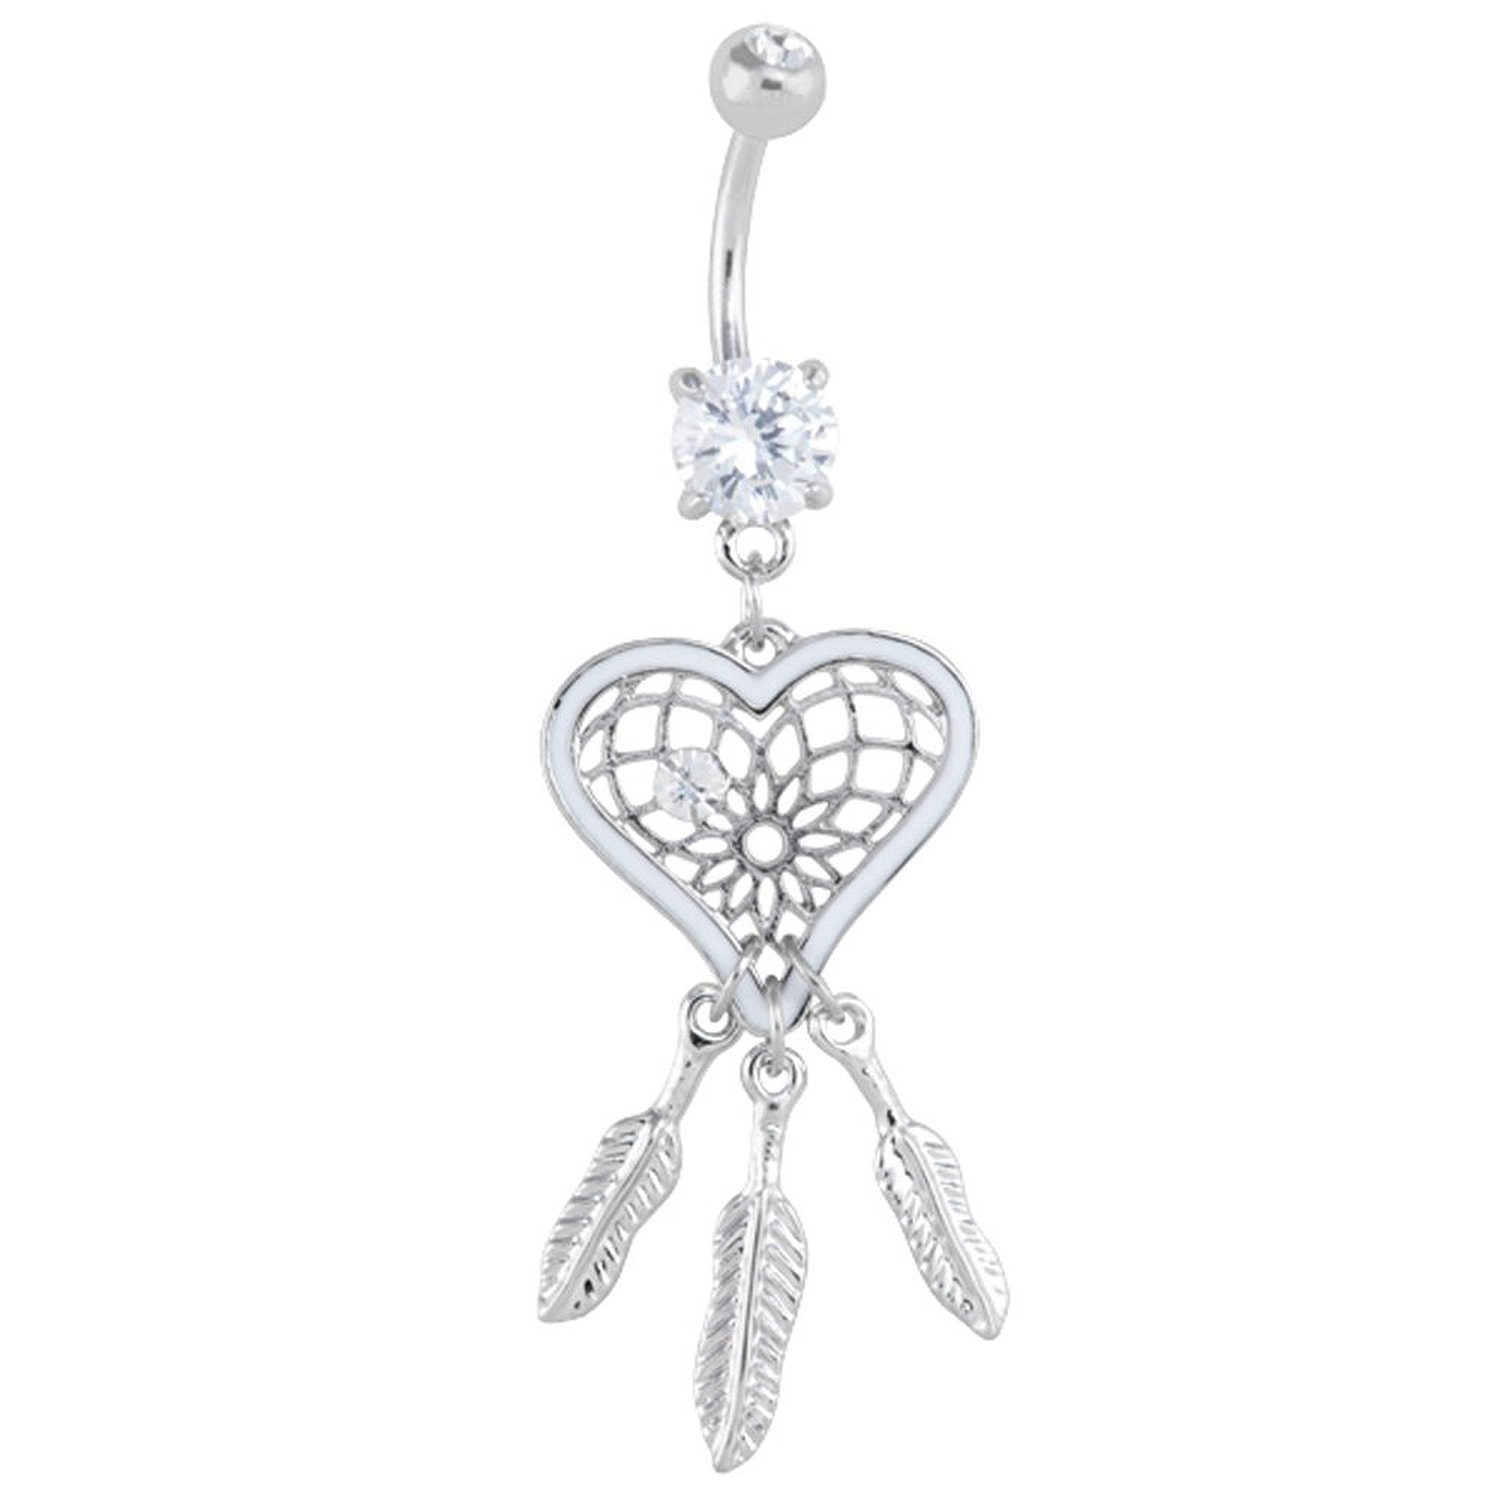 Shaped cz dream catcher dangle belly button ring: body piercing rings: jewelry